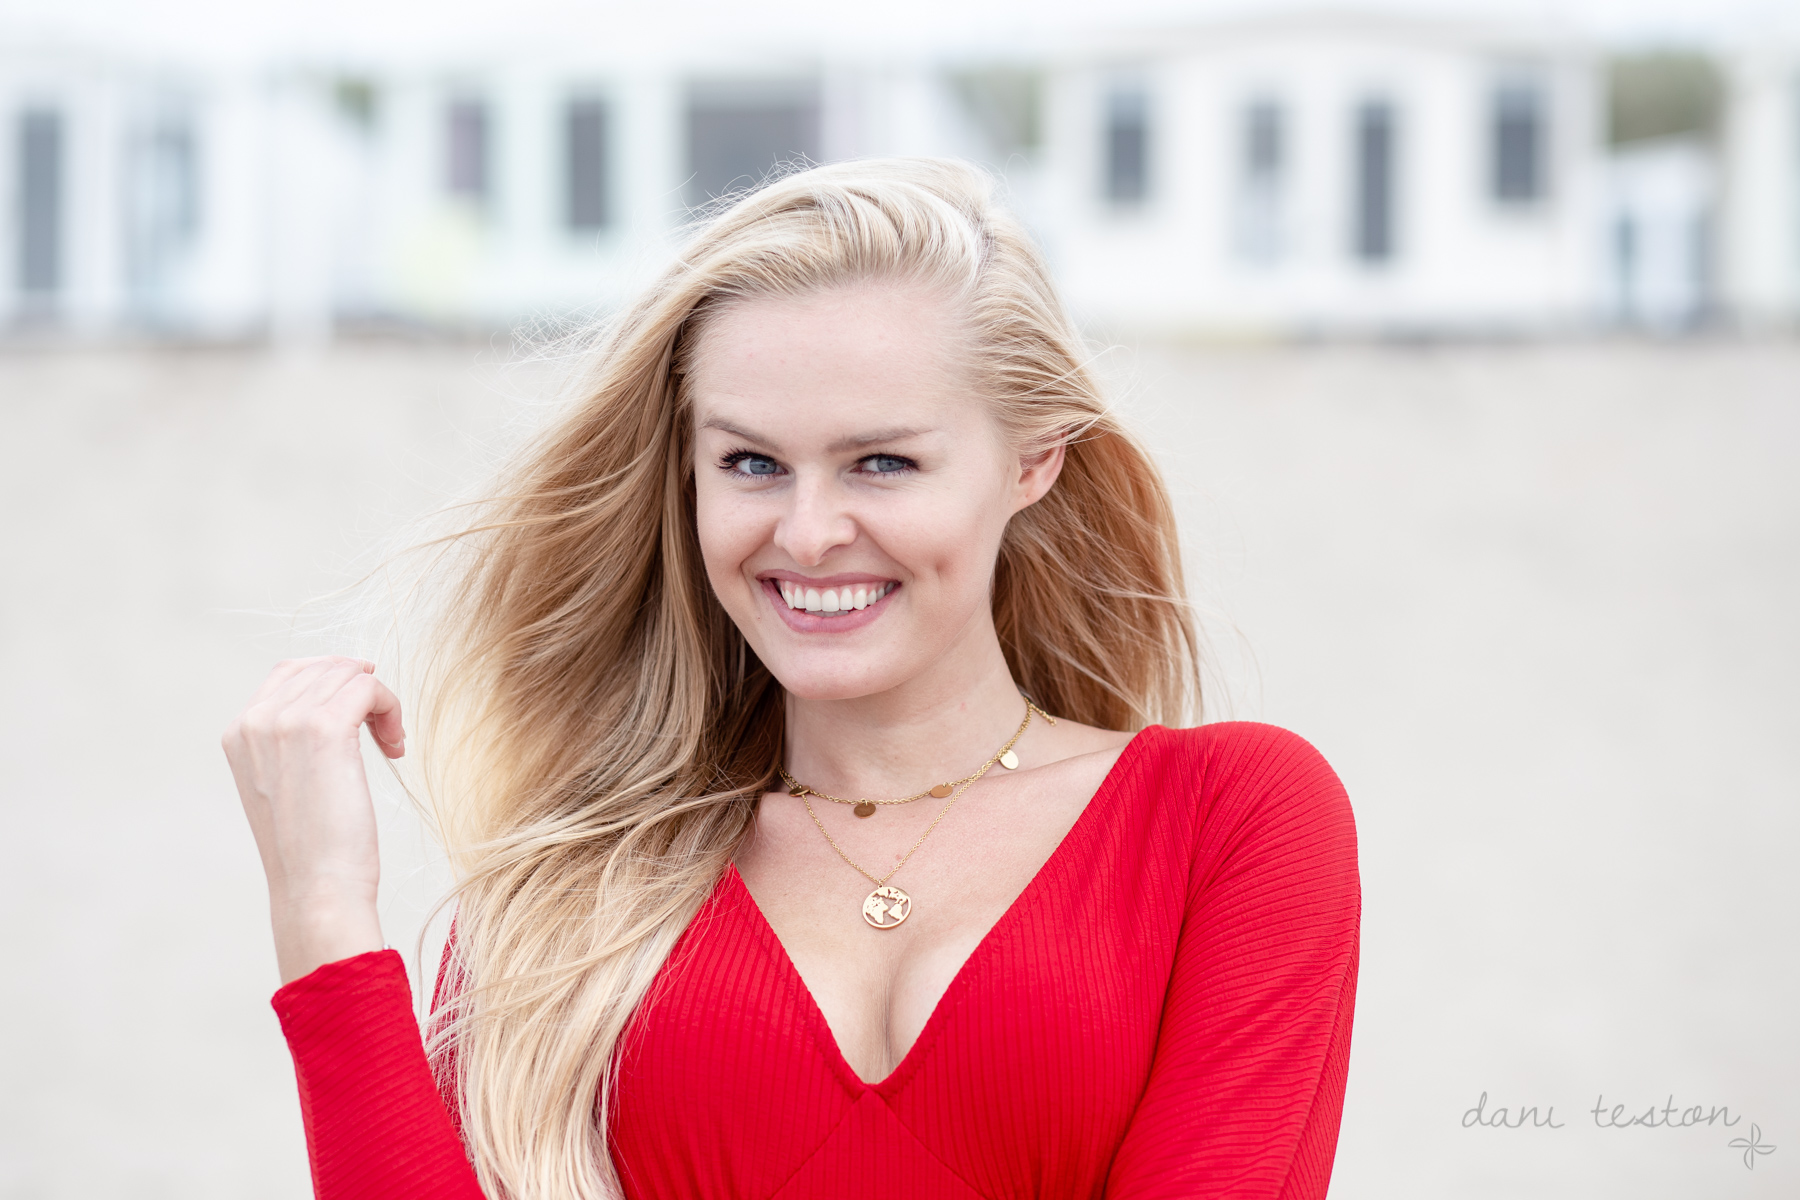 Lifestyle photography session in Zandvoort